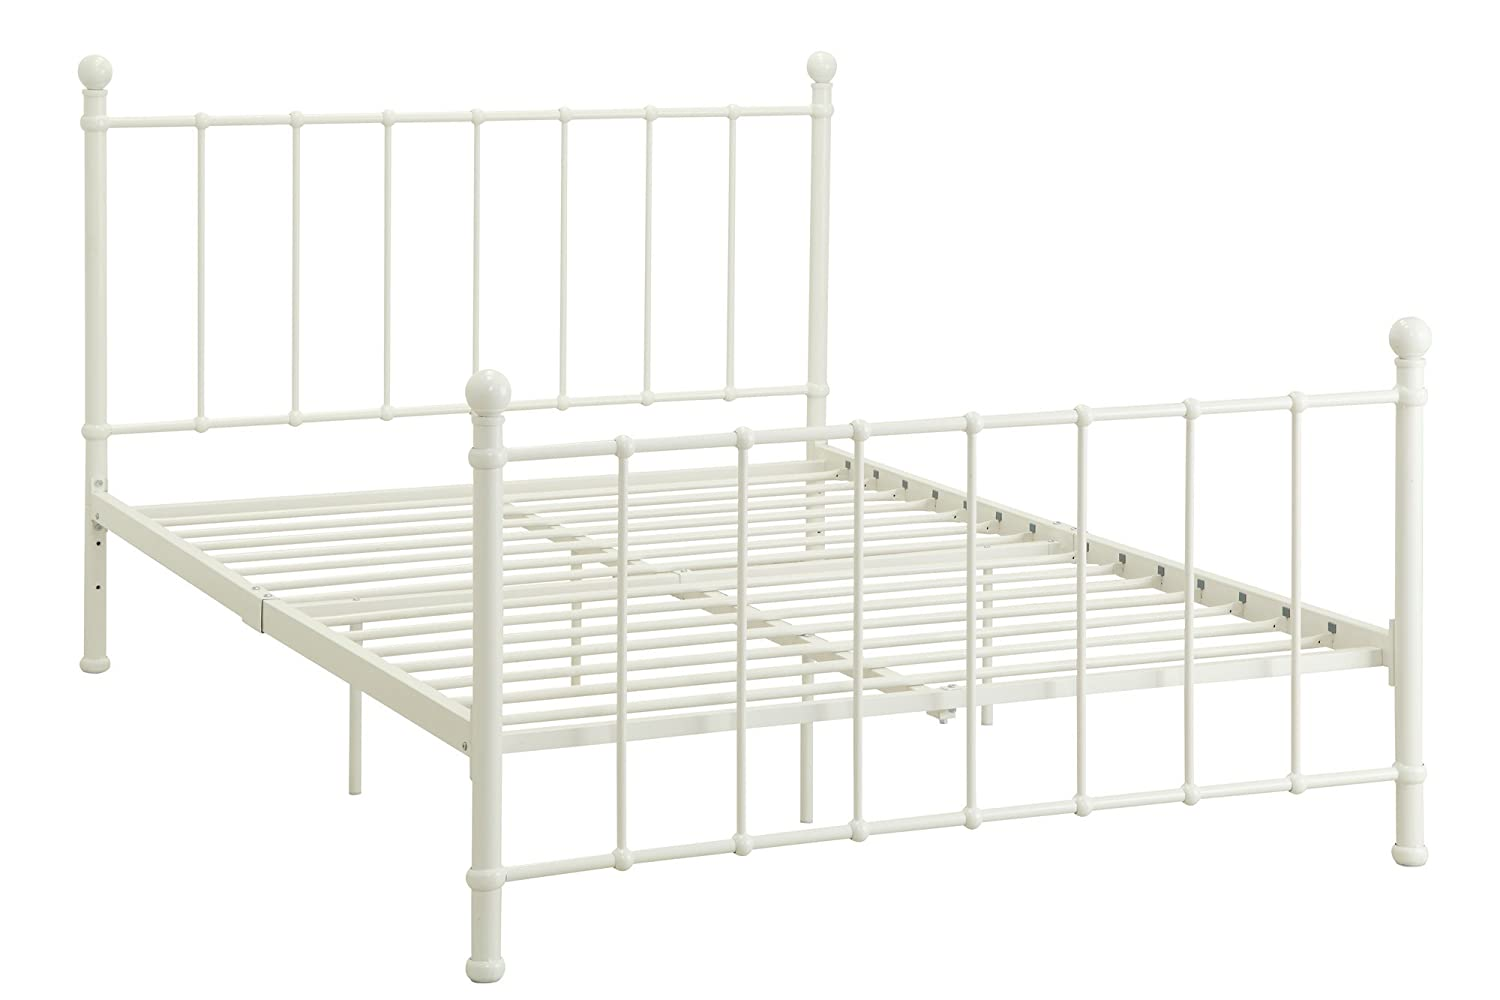 Amazoncom DHP Brick Mill Bed Metal Bed Adjustable Height for